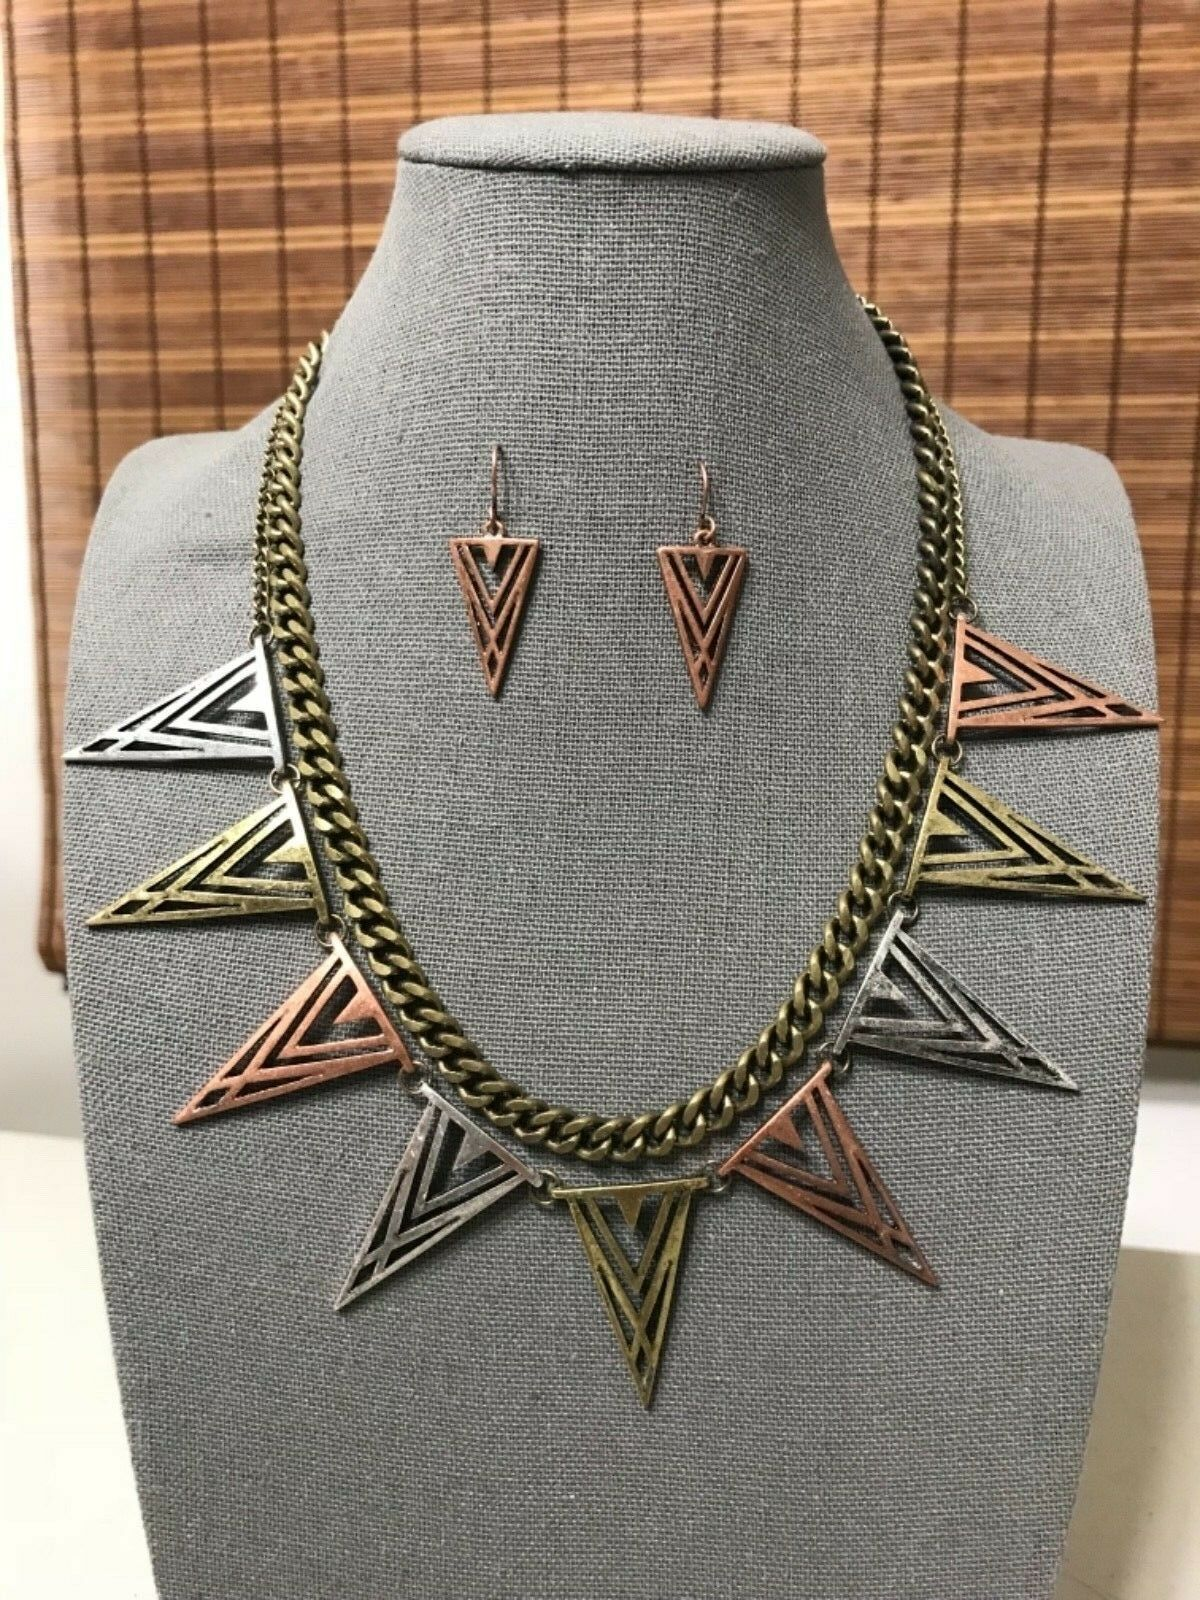 Primary image for Triangle Spike Arrow Necklace & Earrings Set Women Statement Boho Jewelry